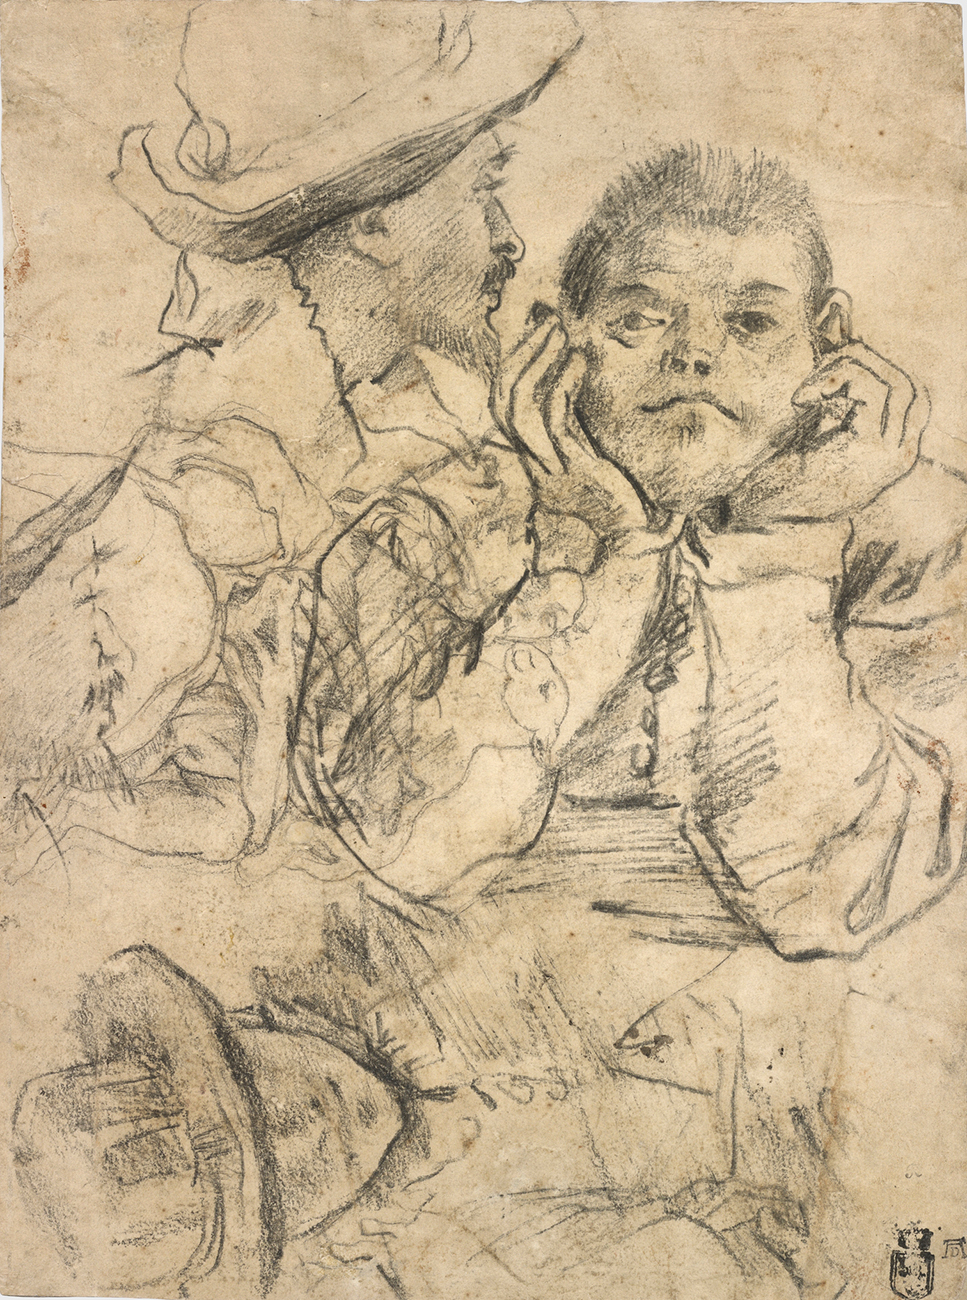 Four Studies of Heads Drawn over a Copy of Saint John the Evangelist by Correggio (recto); Three Studies of Men (verso), about 1585, Annibale Carracci and/or Lodovico Carracci. Black chalk (recto); black and red chalk (verso. 10 7/8 × 8 1/8 in. The J. Paul Getty Museum, Los Angeles